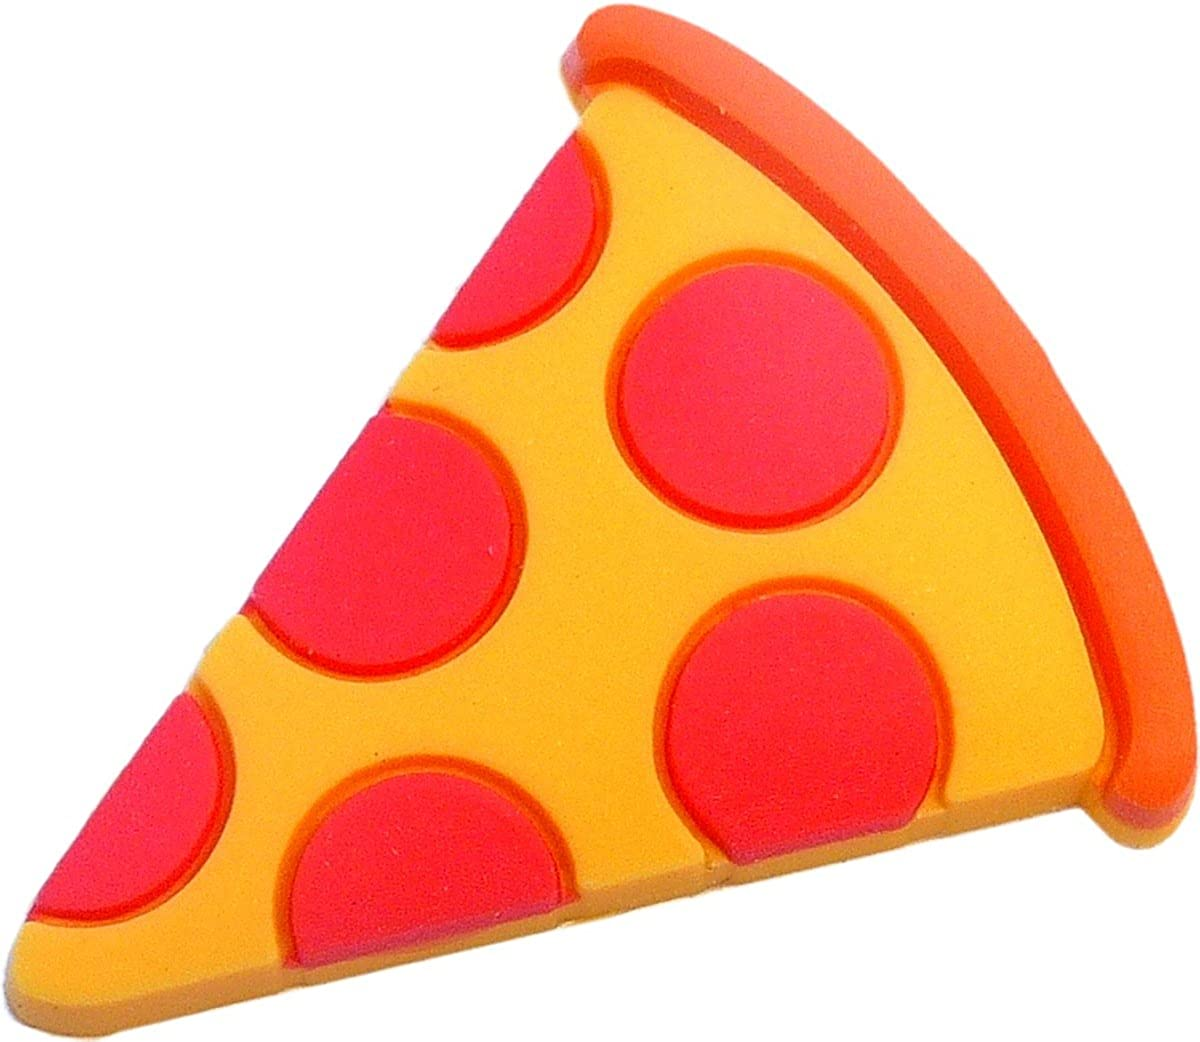 Pizza Rubber Charm for Wristbands